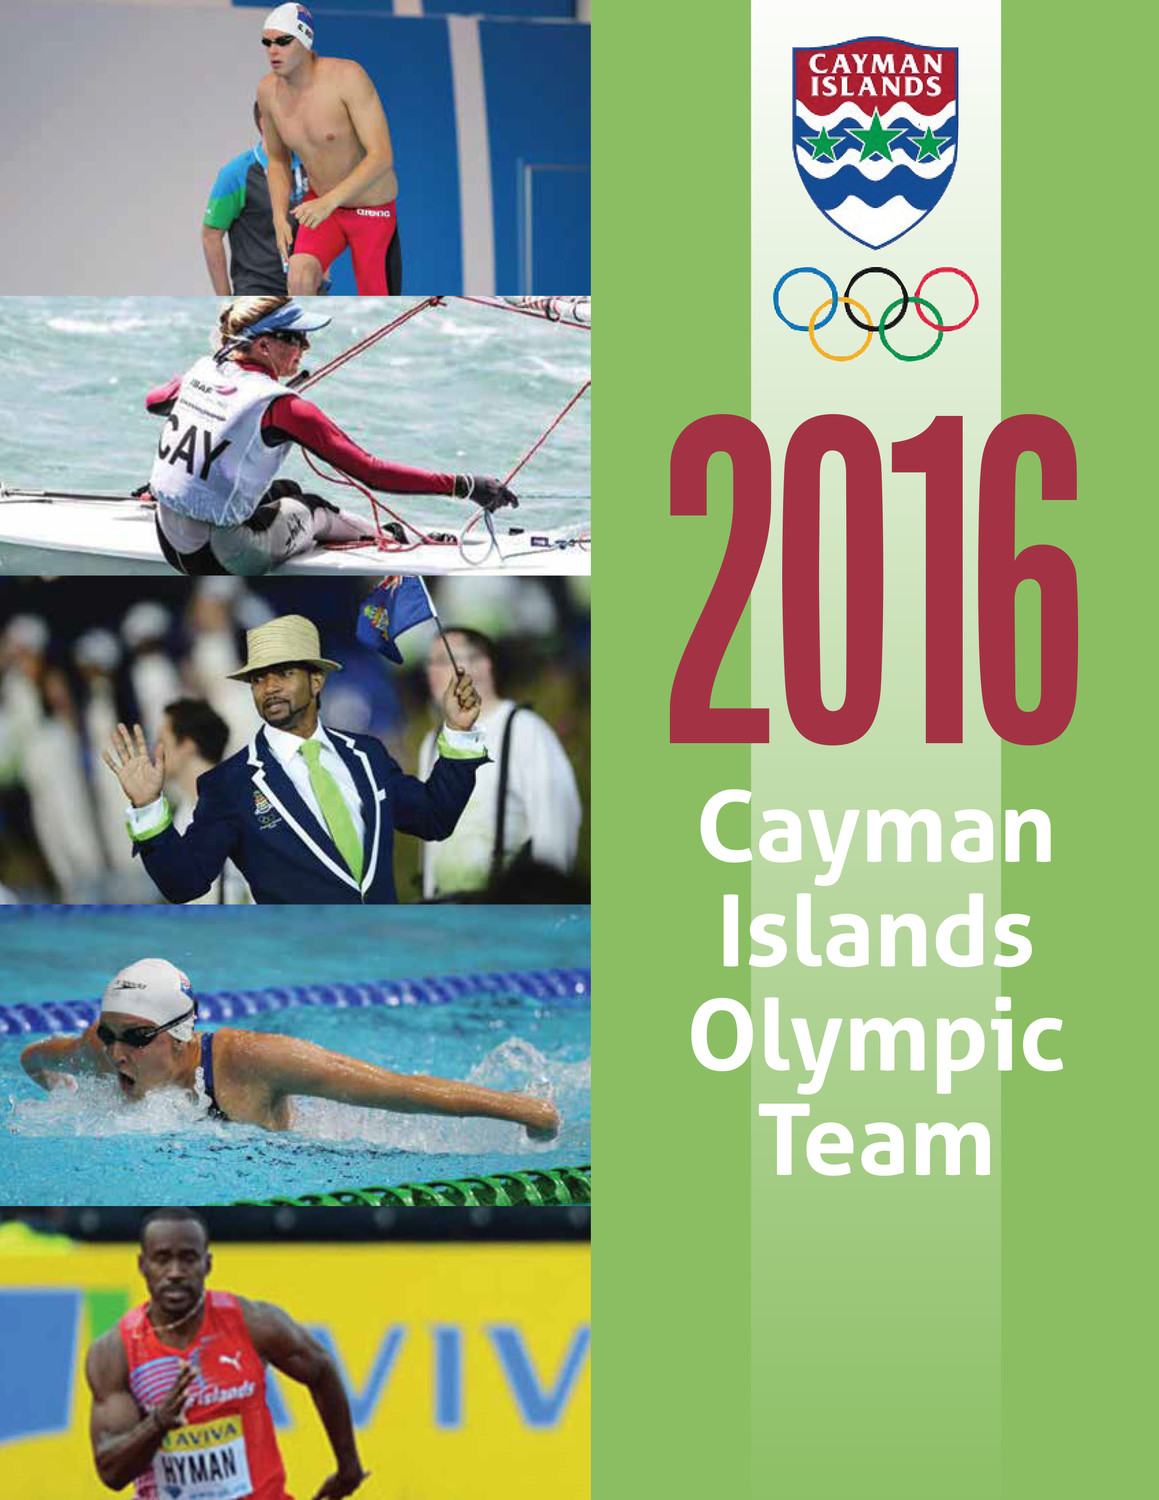 The goal of the Cayman Islands Olympic Committee in publishing this magazine was to highlight the athletes competing in the 2016 games.